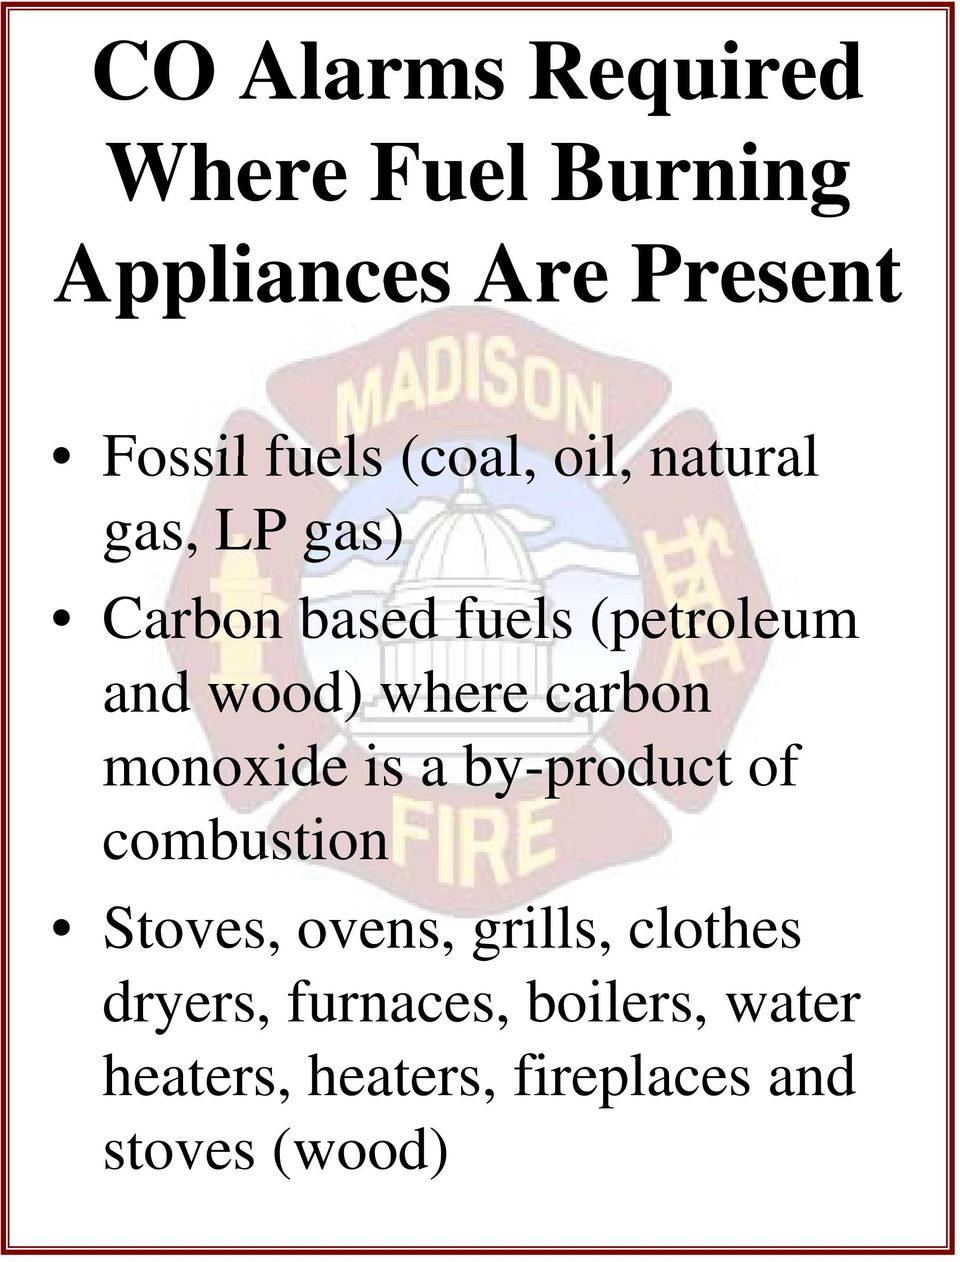 where carbon monoxide is a by-product of combustion Stoves, ovens, grills,